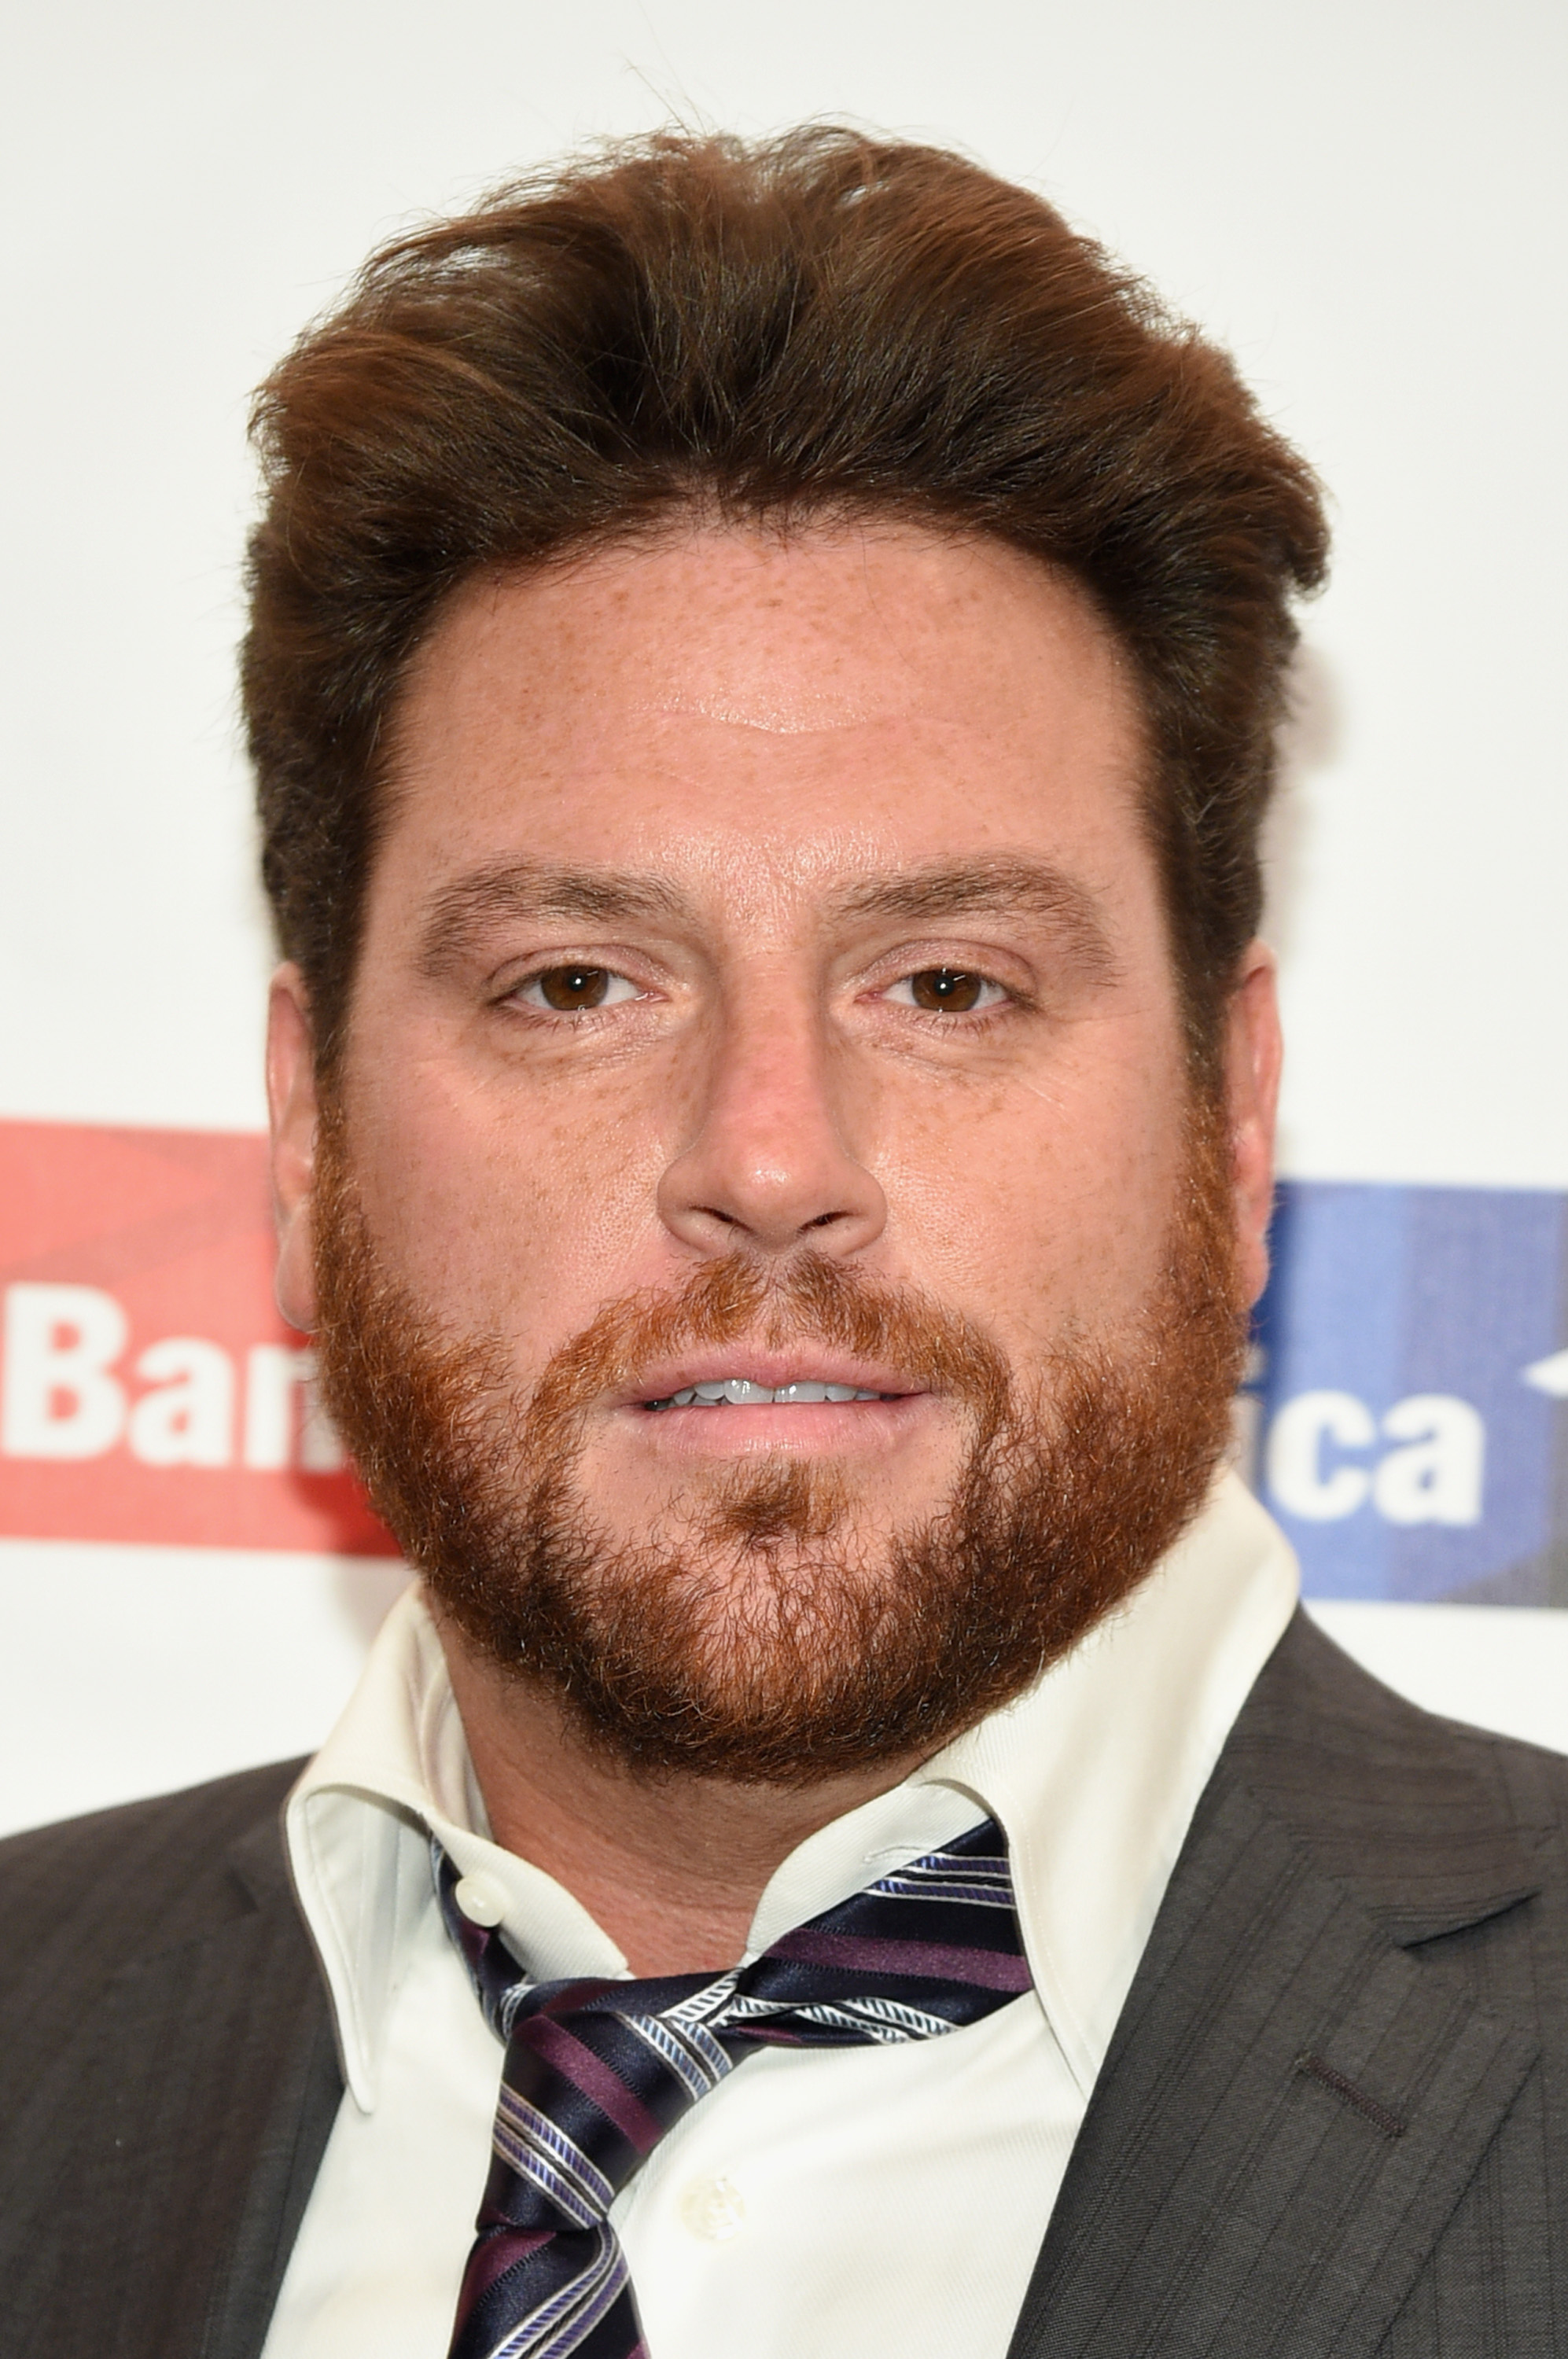 Chef Scott Conant attends the Food Bank For New York City gala on April 21, 2015 in New York City.